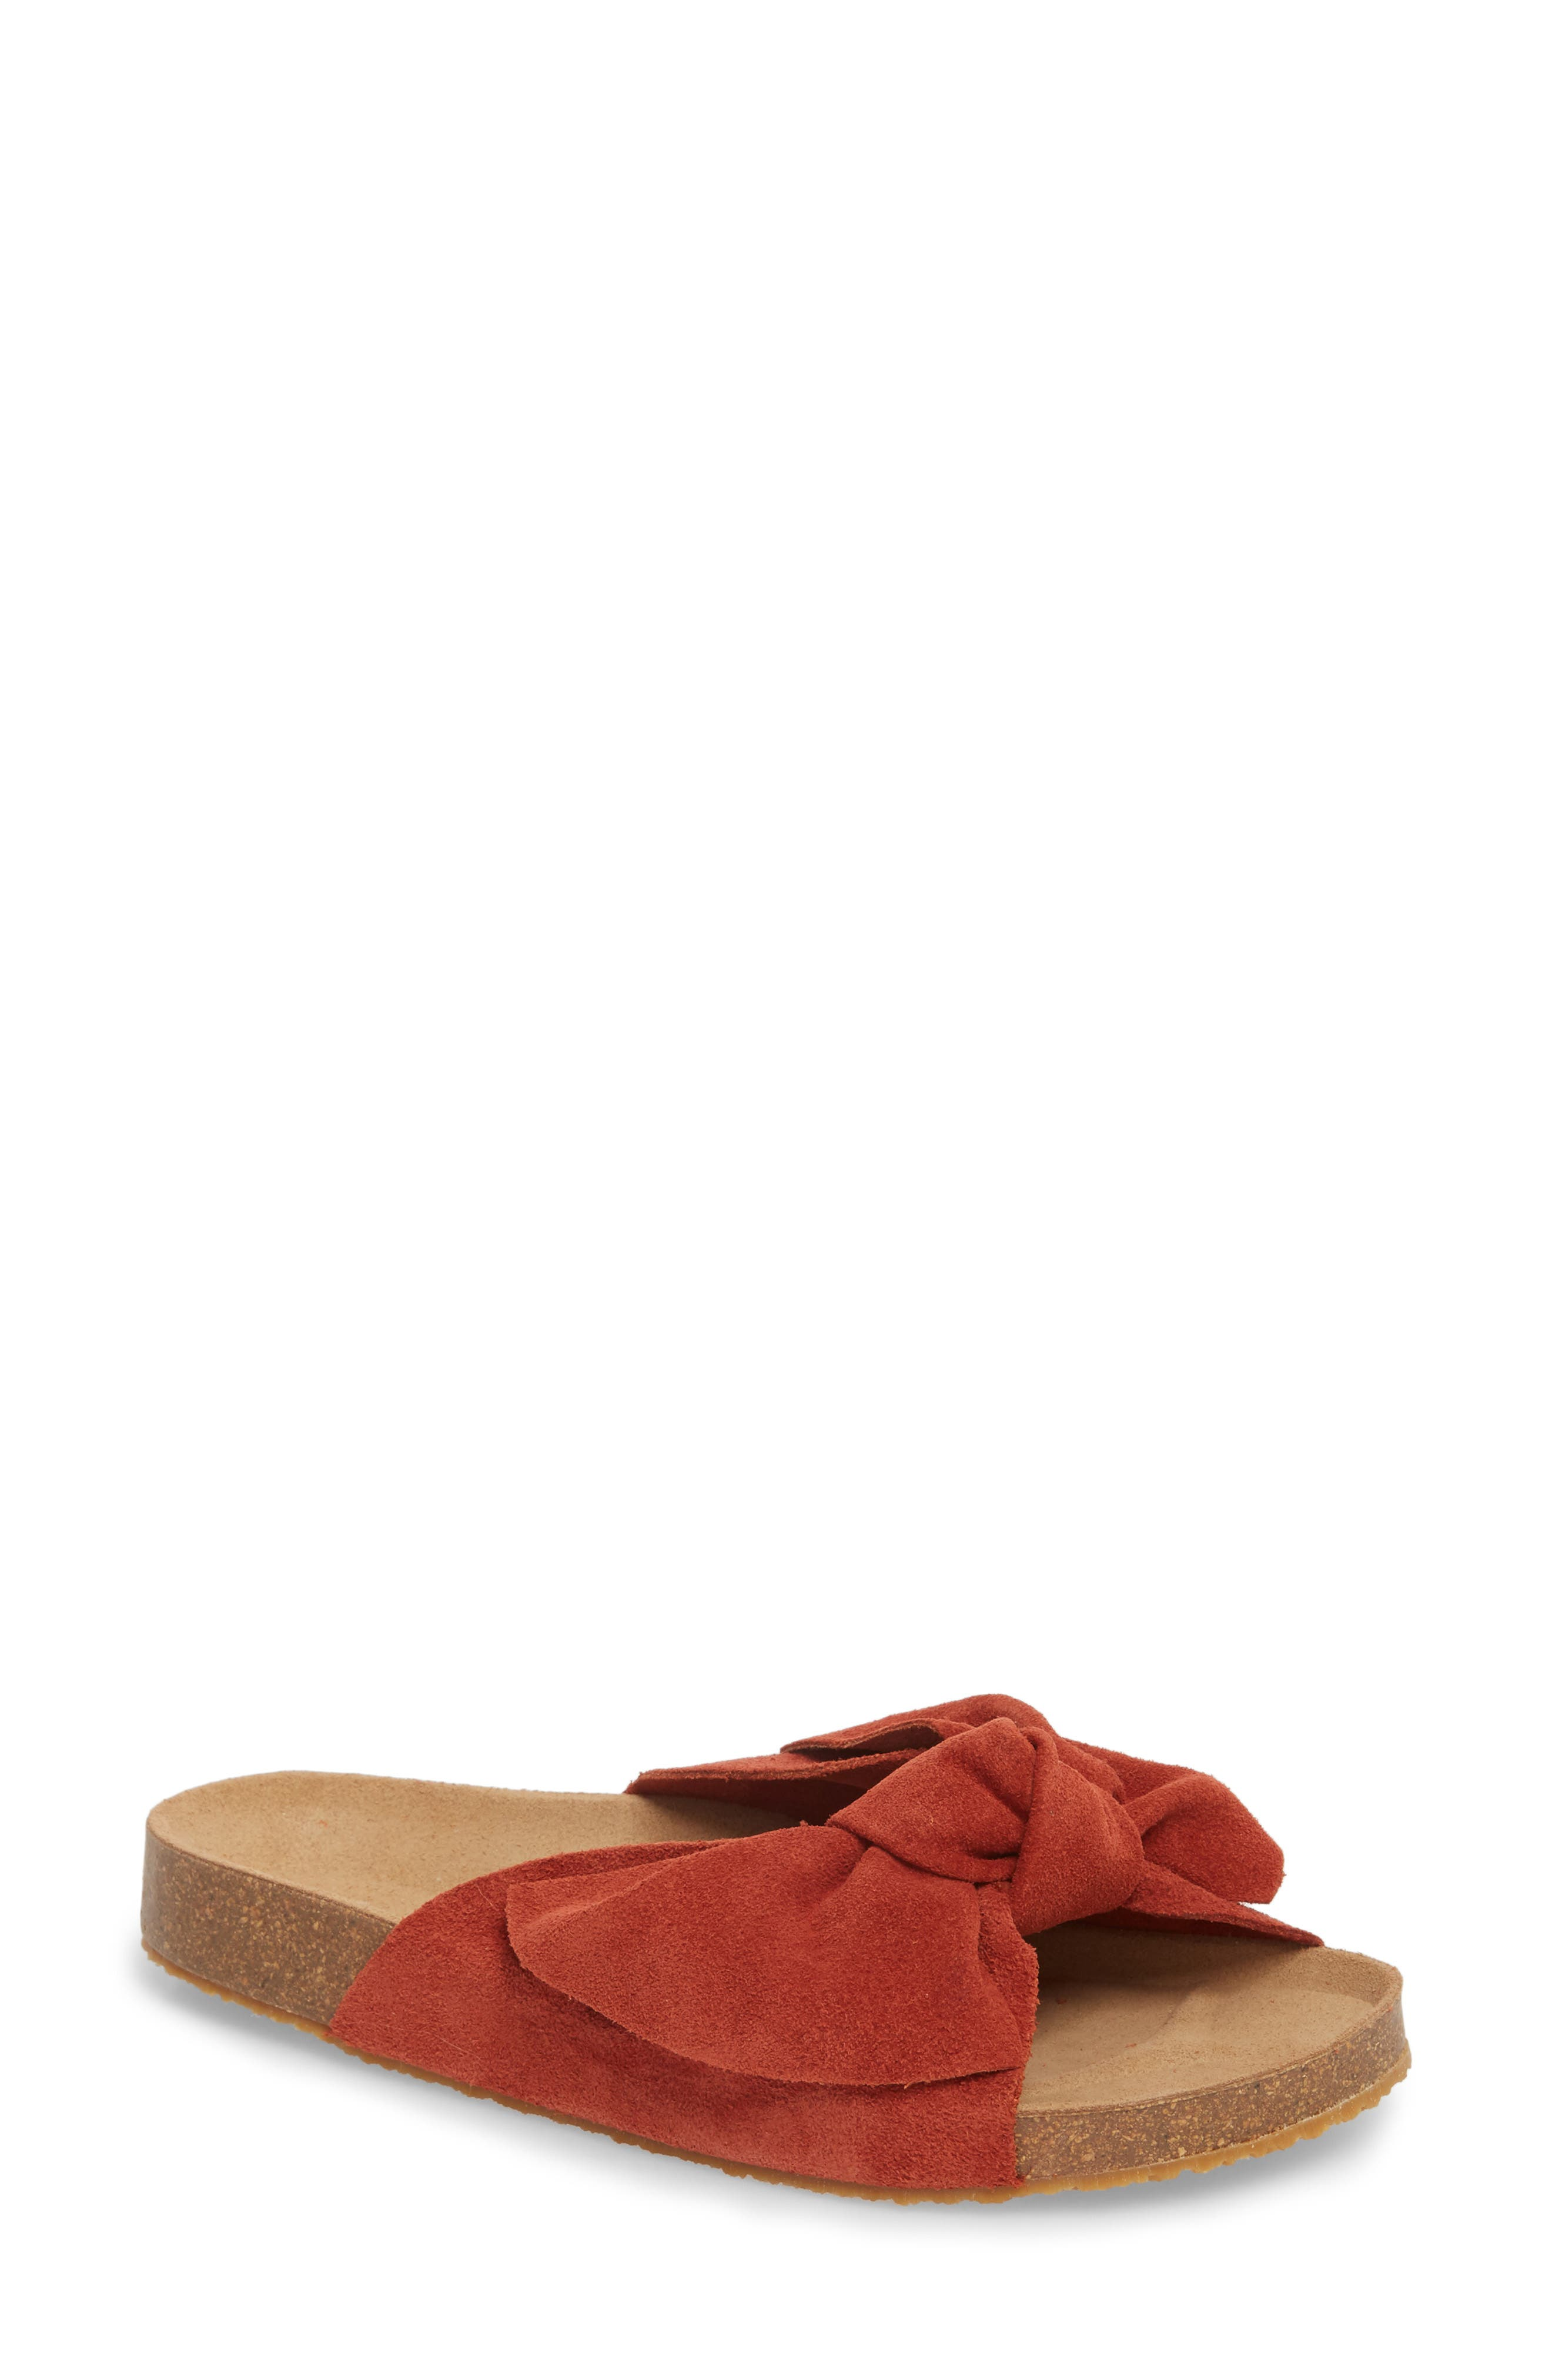 Jeffrey Campbell Sunmist Knotted Slide (Women)